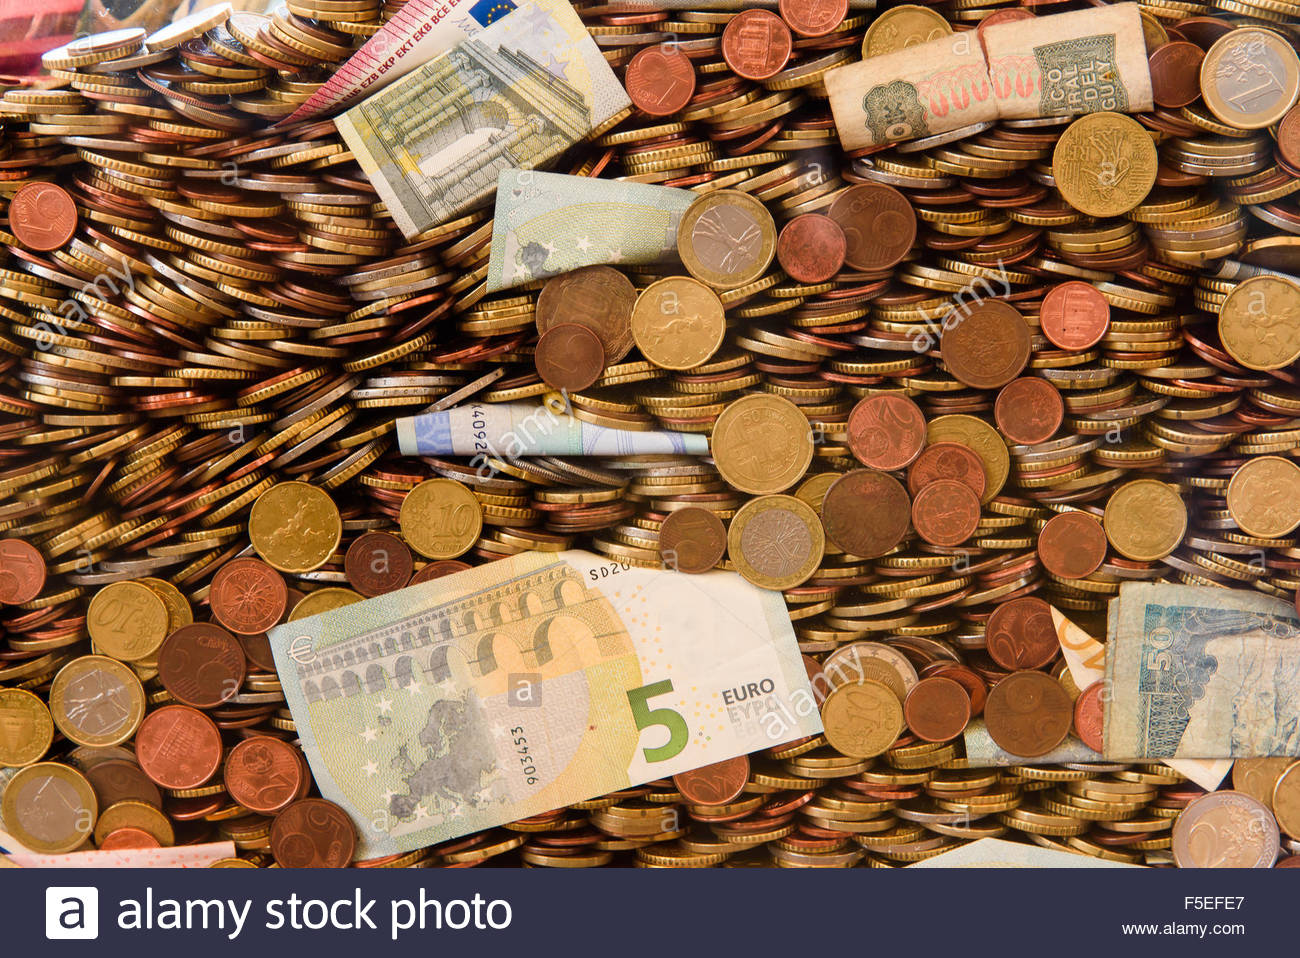 Money background with bancknote and coins - Stock Image